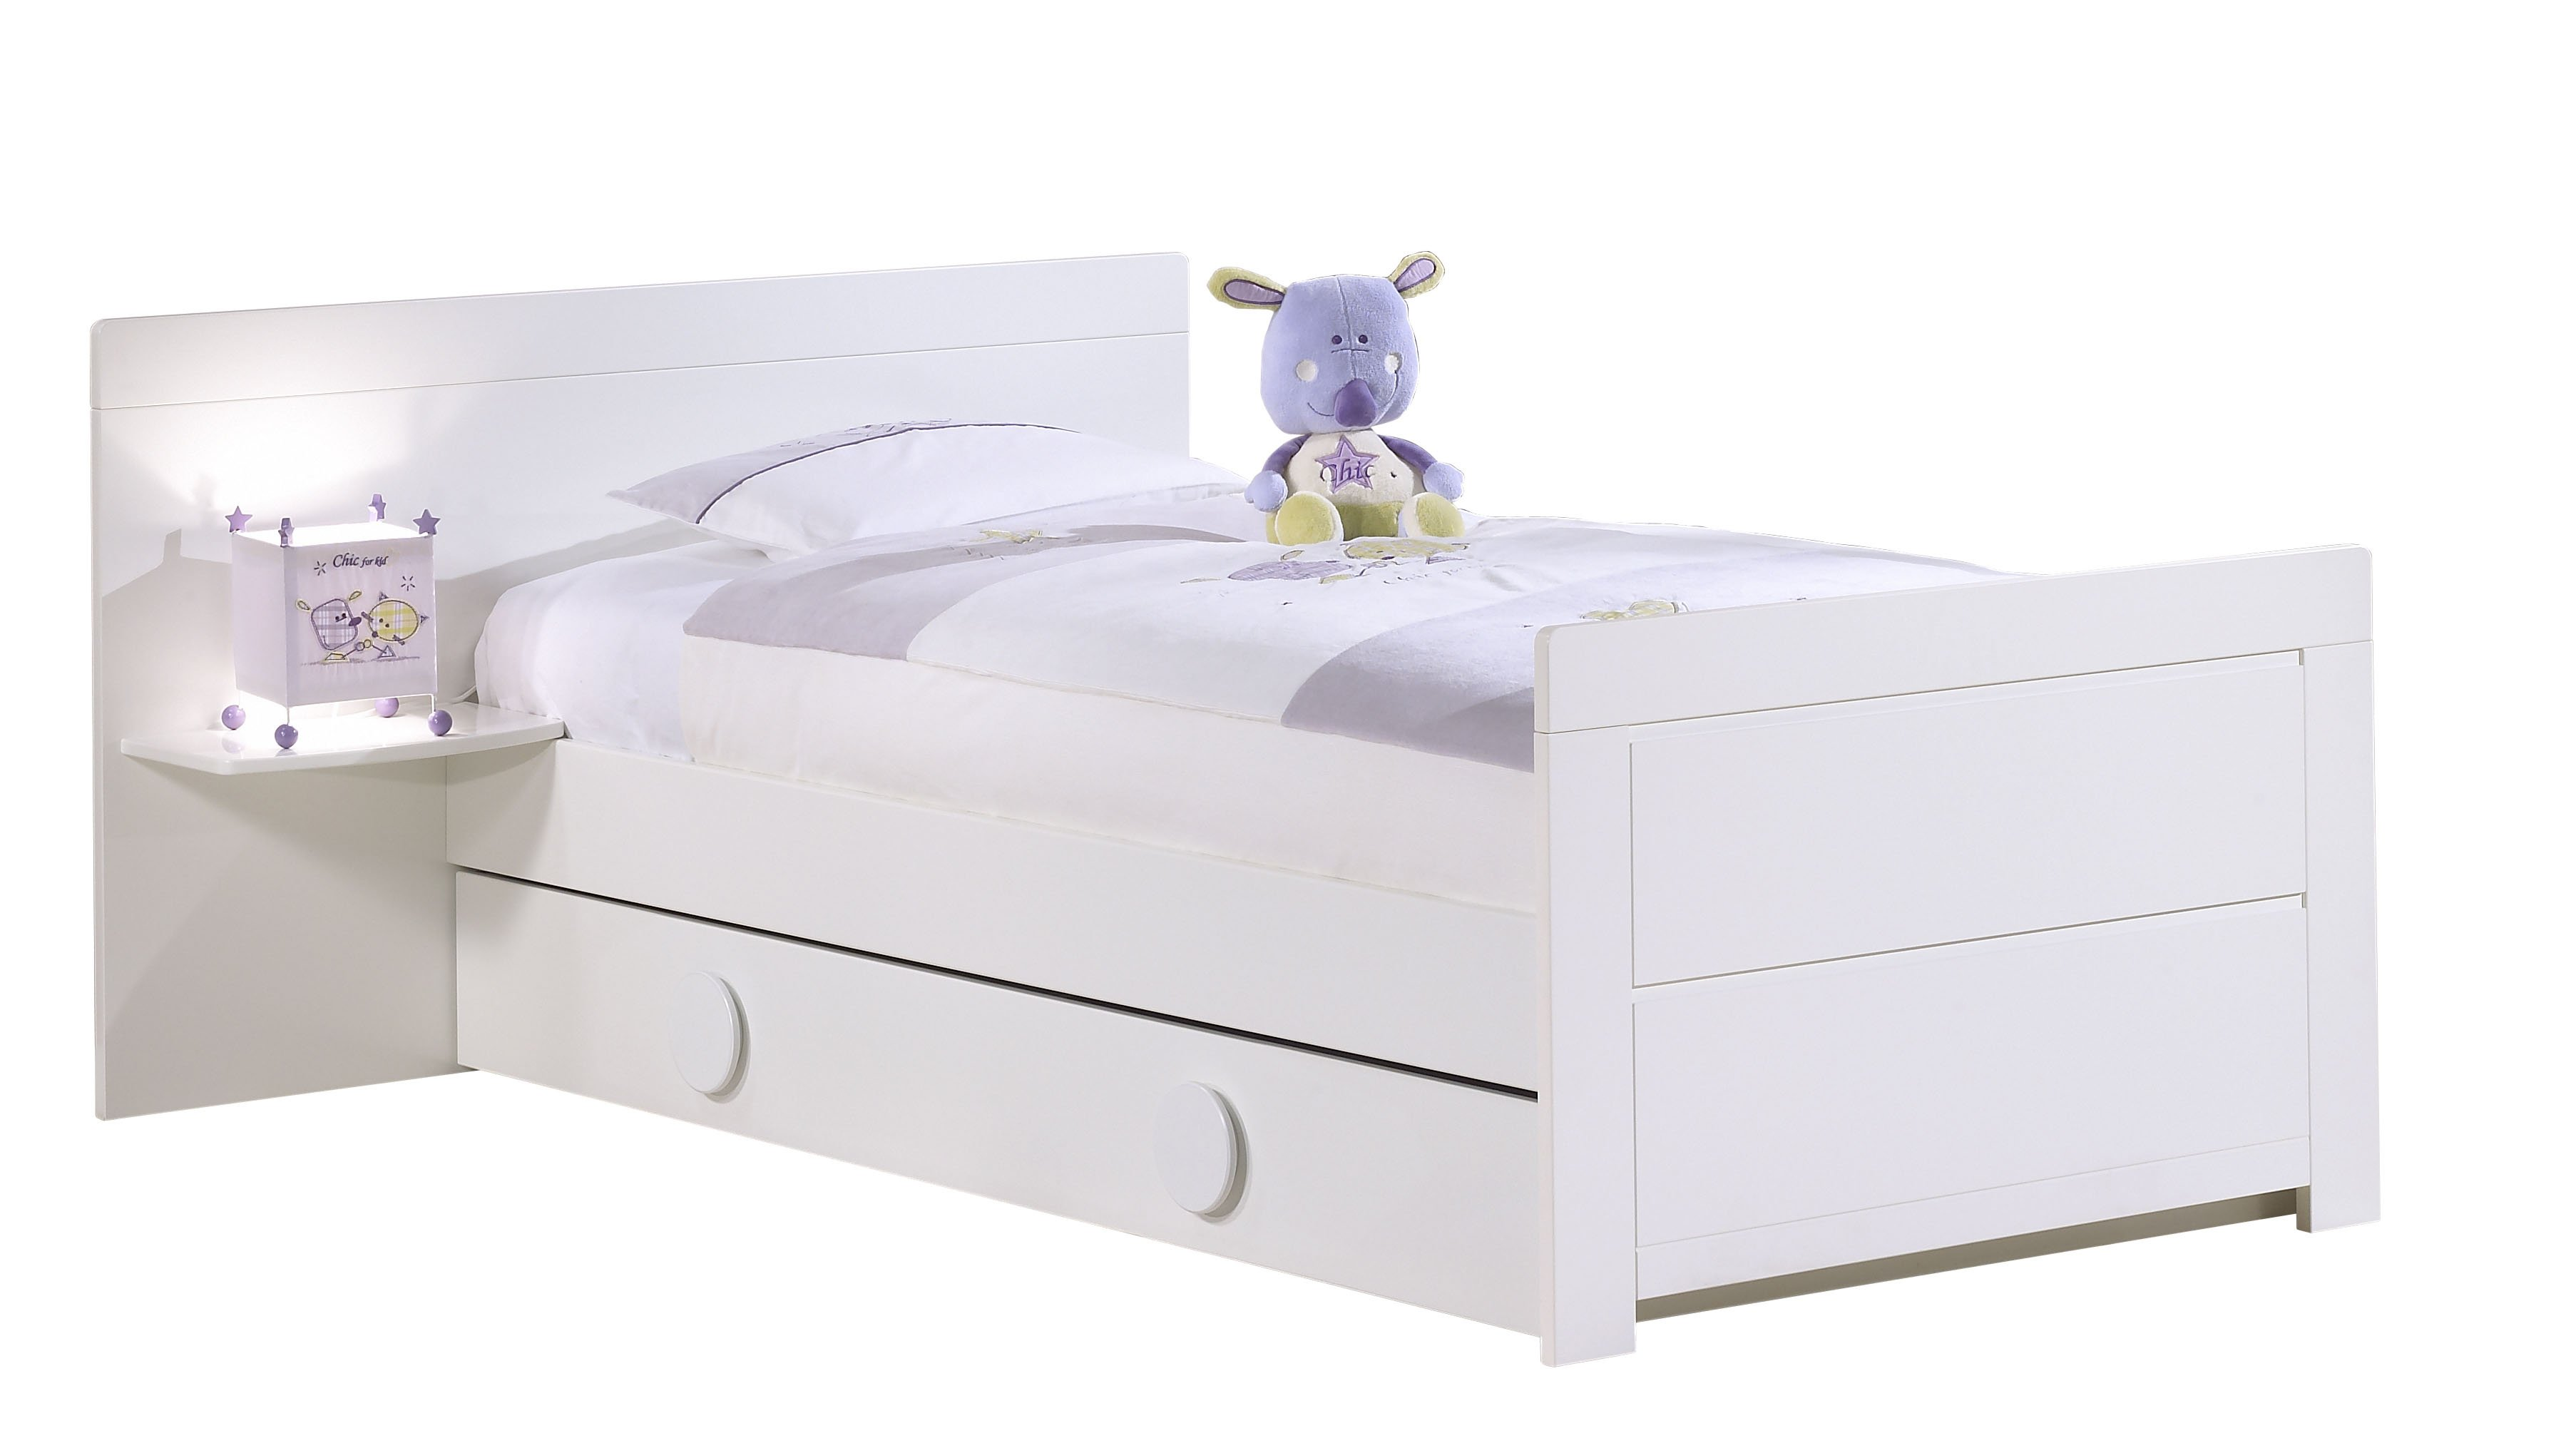 Sauthon meubles lit junior 90x190 avec chevet zen blanc made in b b - Lit blanc laque 90x190 ...